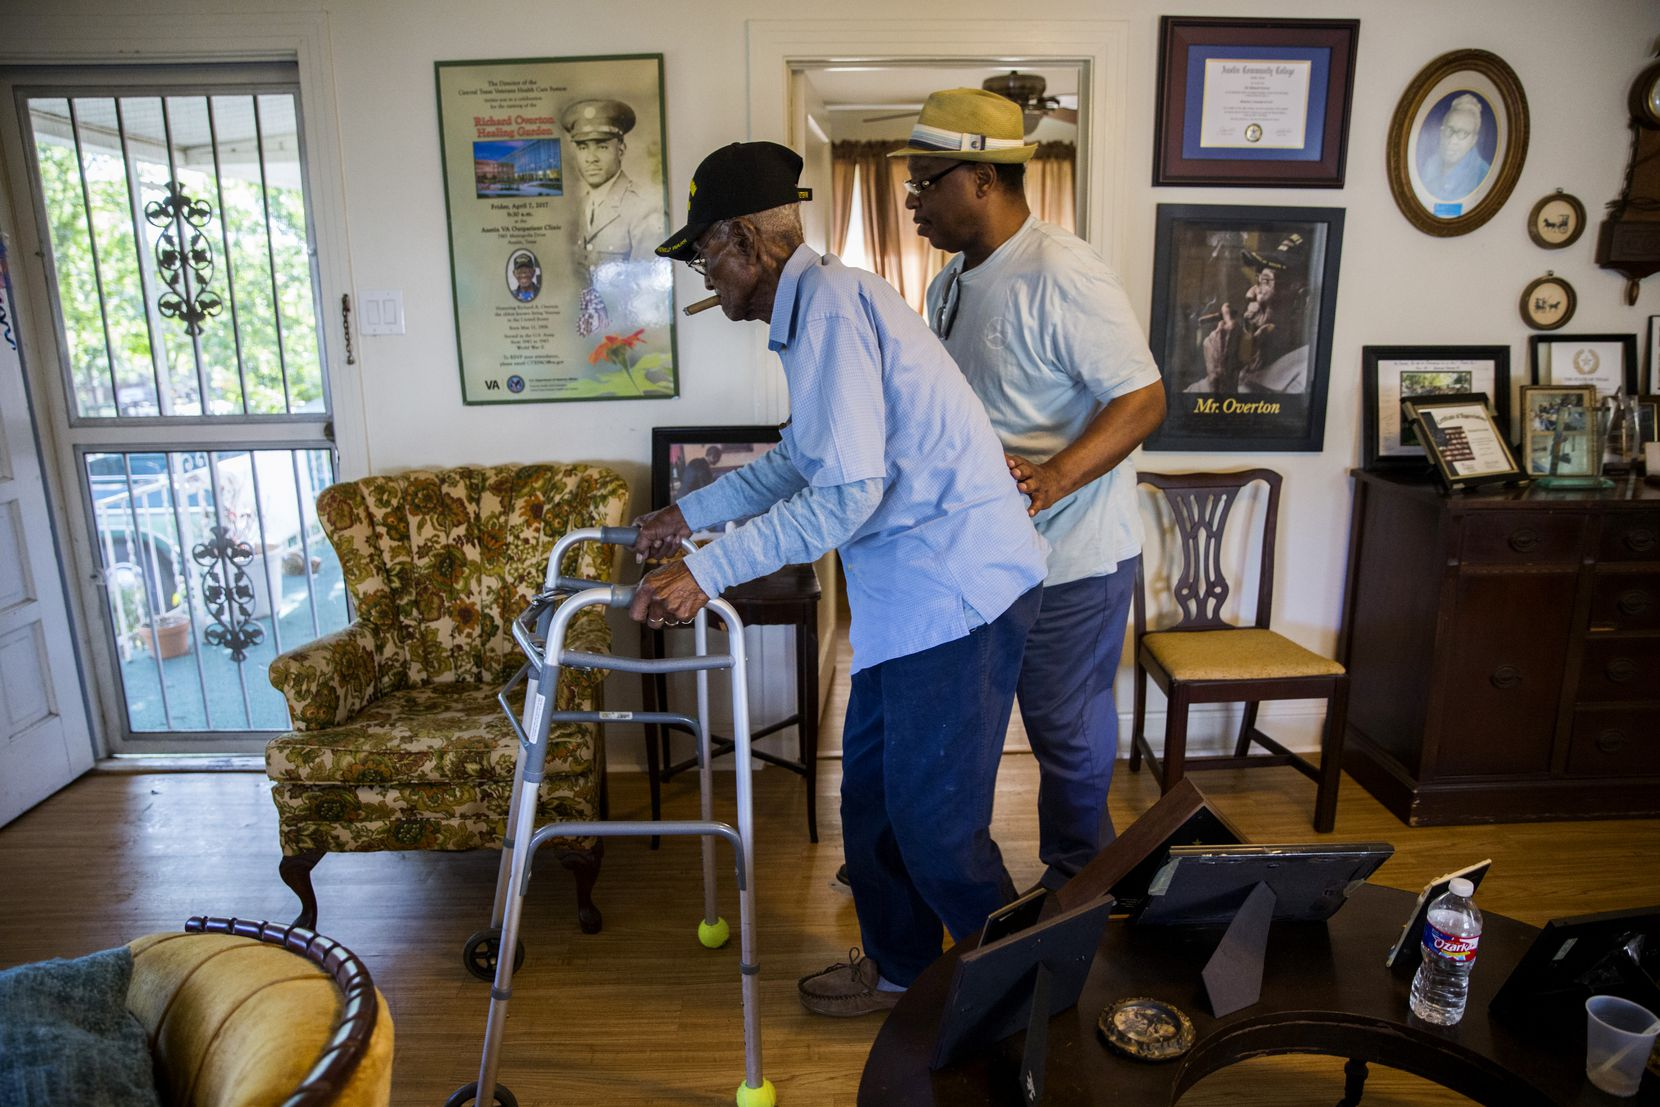 Richard Overton is escorted by family friend Martin Wilford through his living room to the front porch at 10:19 a.m. He spends much of his day there, smoking cigars, snooping on the neighbors, waving at honking cars and greeting visitors.